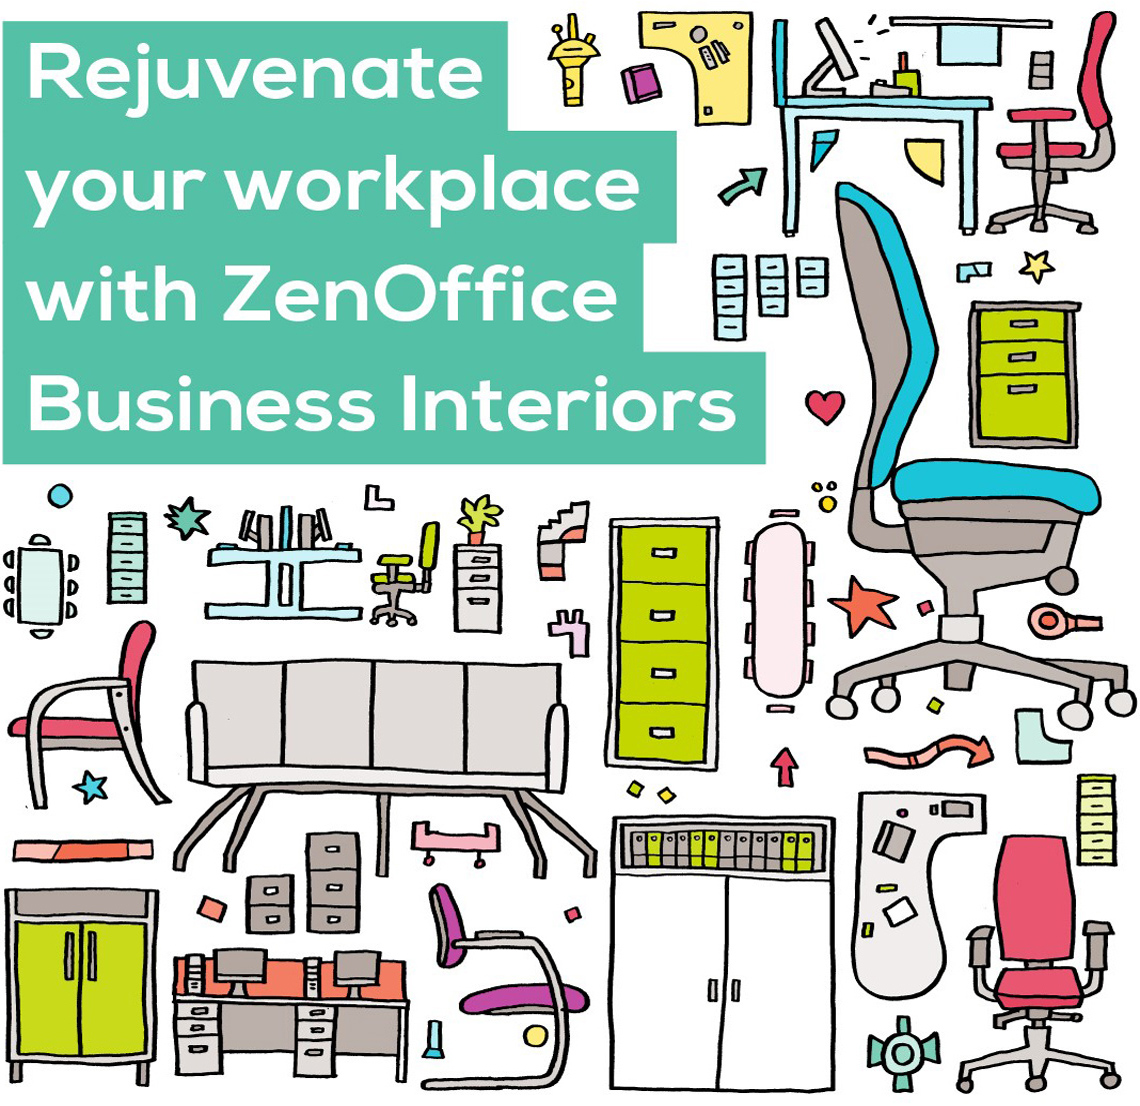 Rejuvenate your workplace with ZenOffice